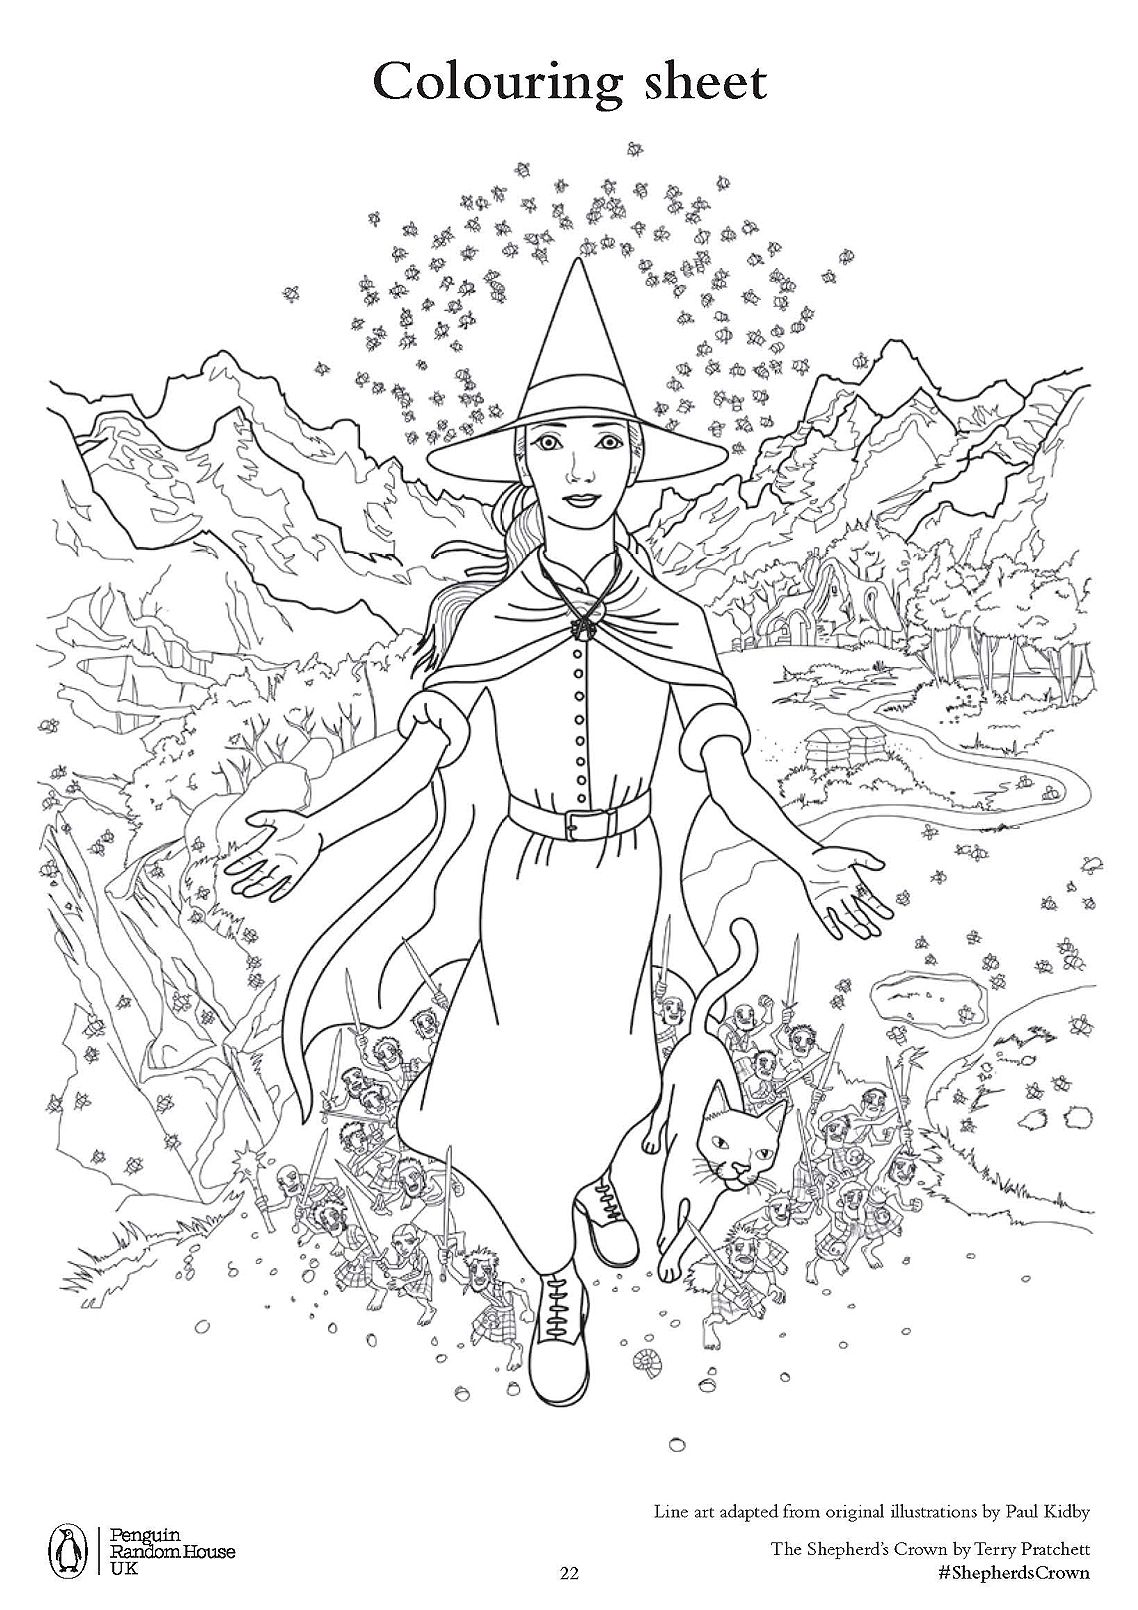 Terry Pratchett S The Shepherd S Crown Free Colouring Downloads Whsmith Blog